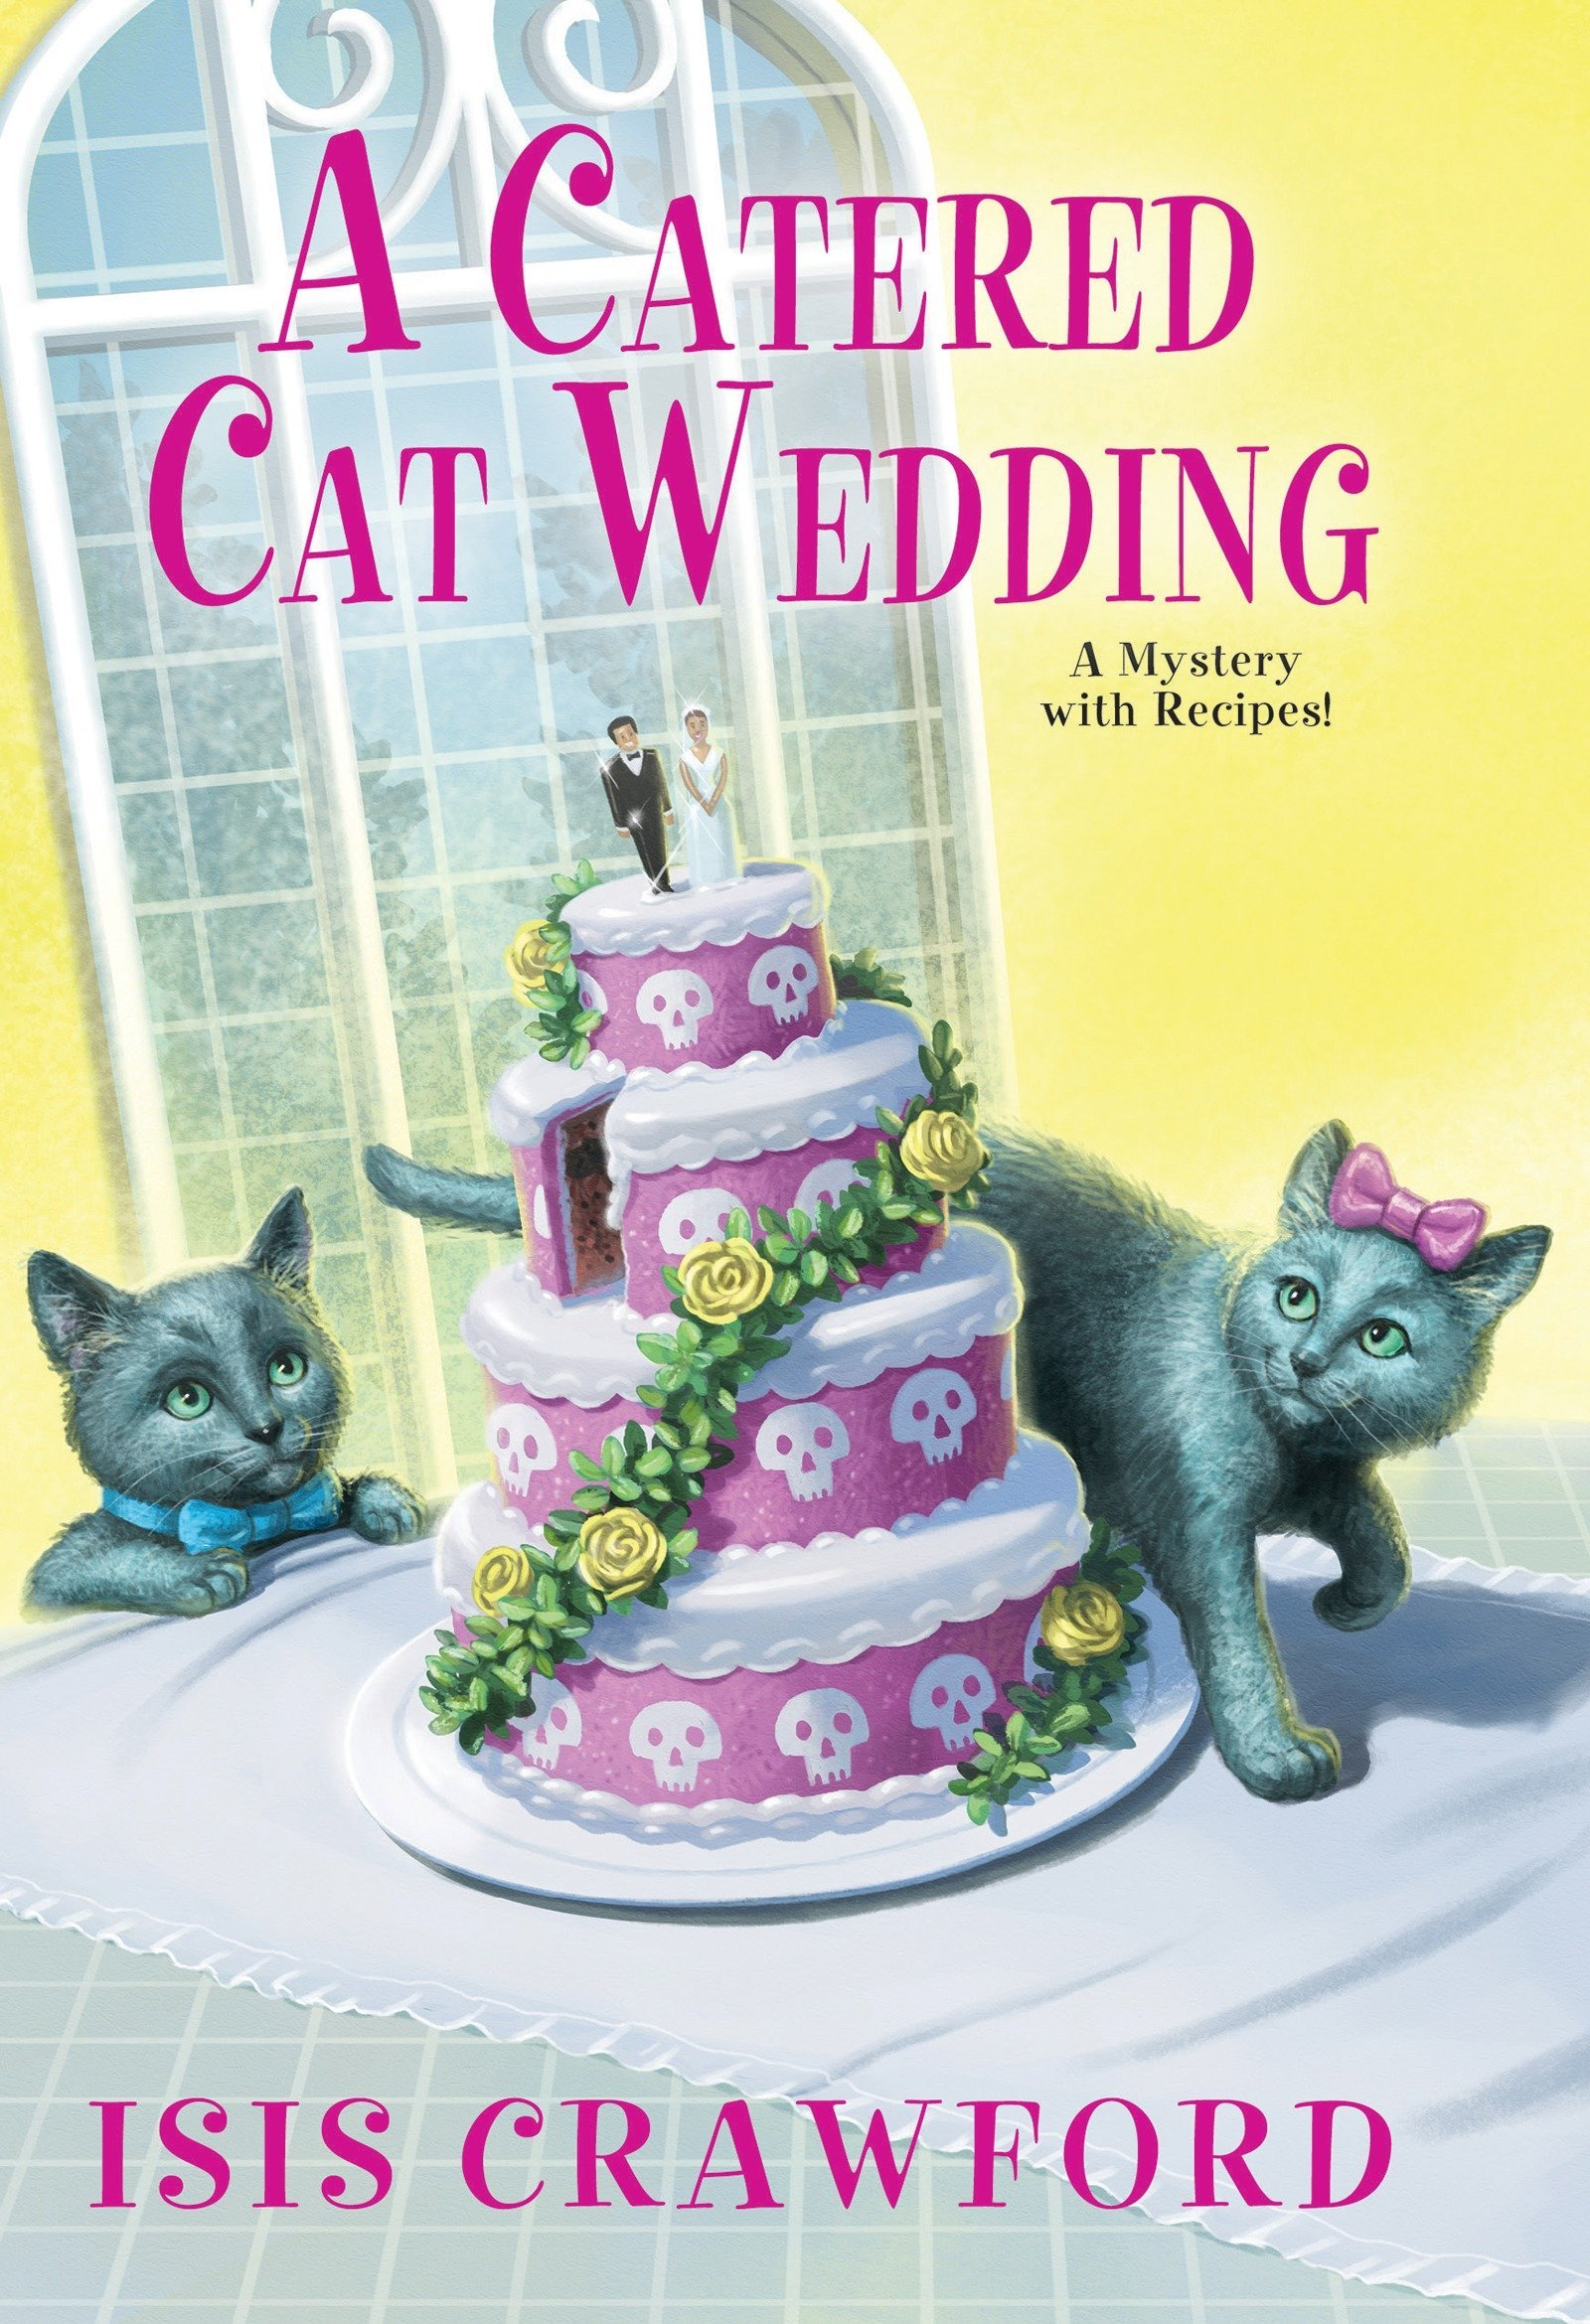 Amazon.com: A Catered Cat Wedding (A Mystery With Recipes